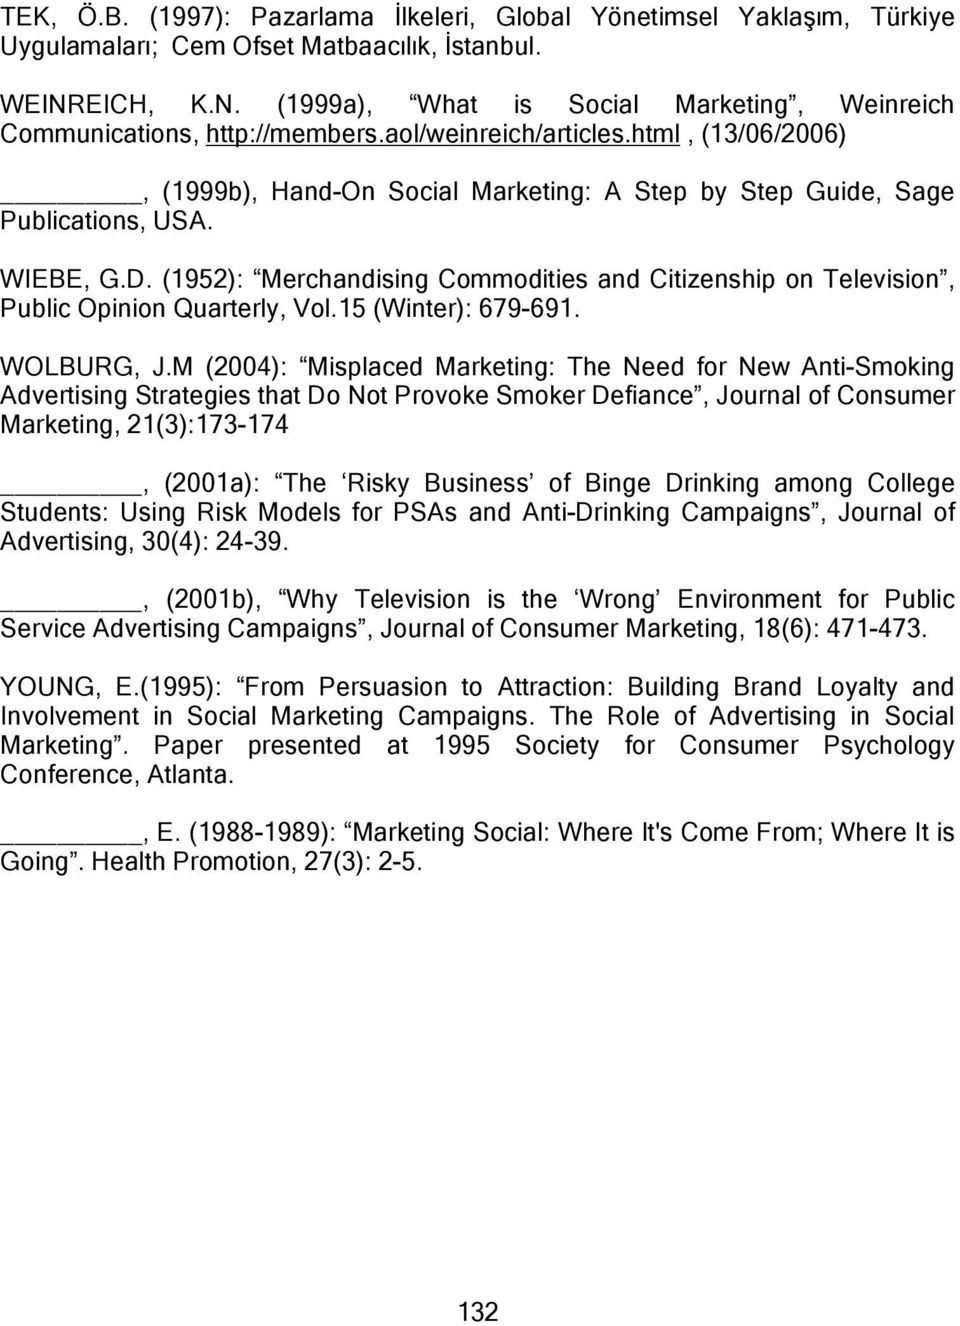 html, (13/06/2006), (1999b), Hand-On Social Marketing: A Step by Step Guide, Sage Publications, USA. WIEBE, G.D.